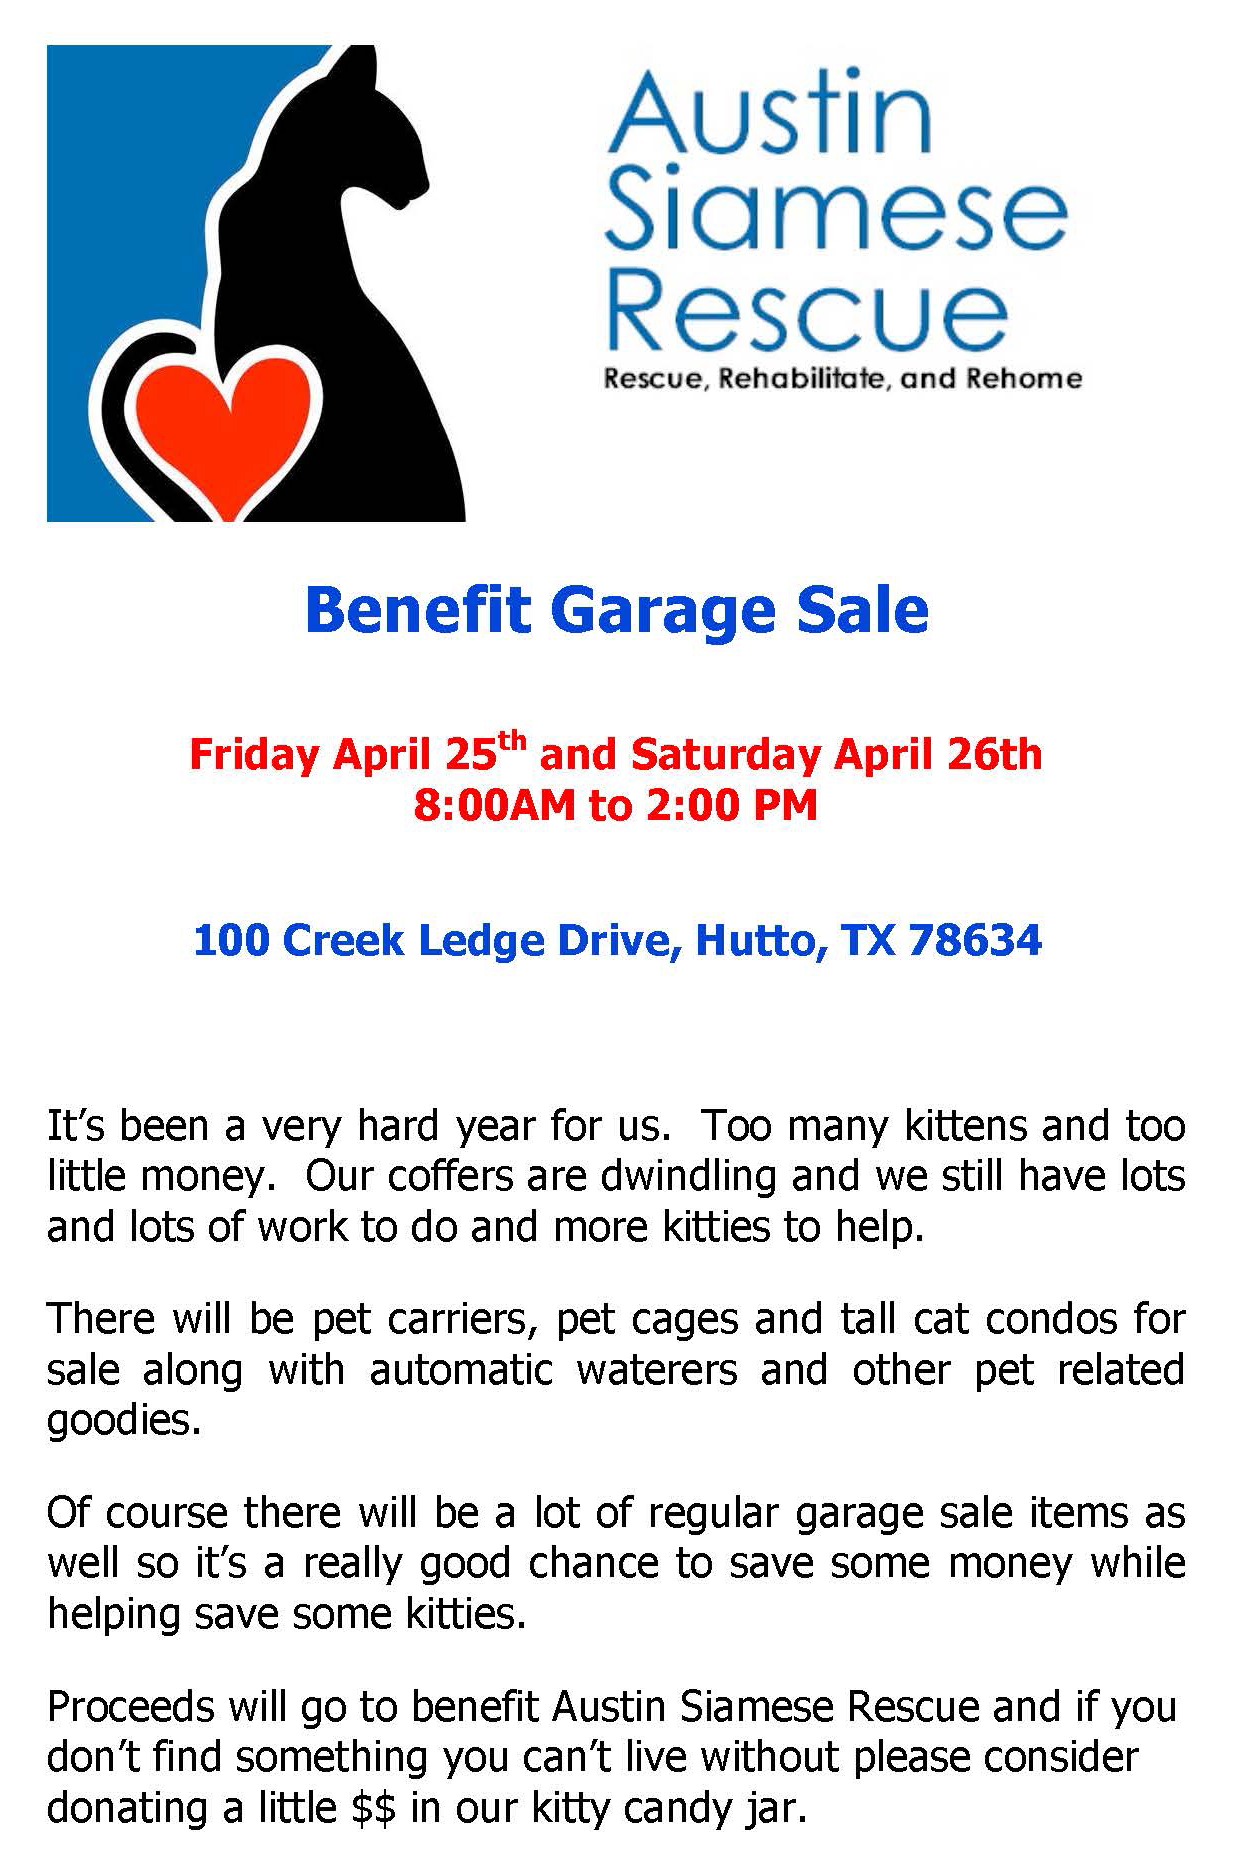 2014 Benefit Garage Sale